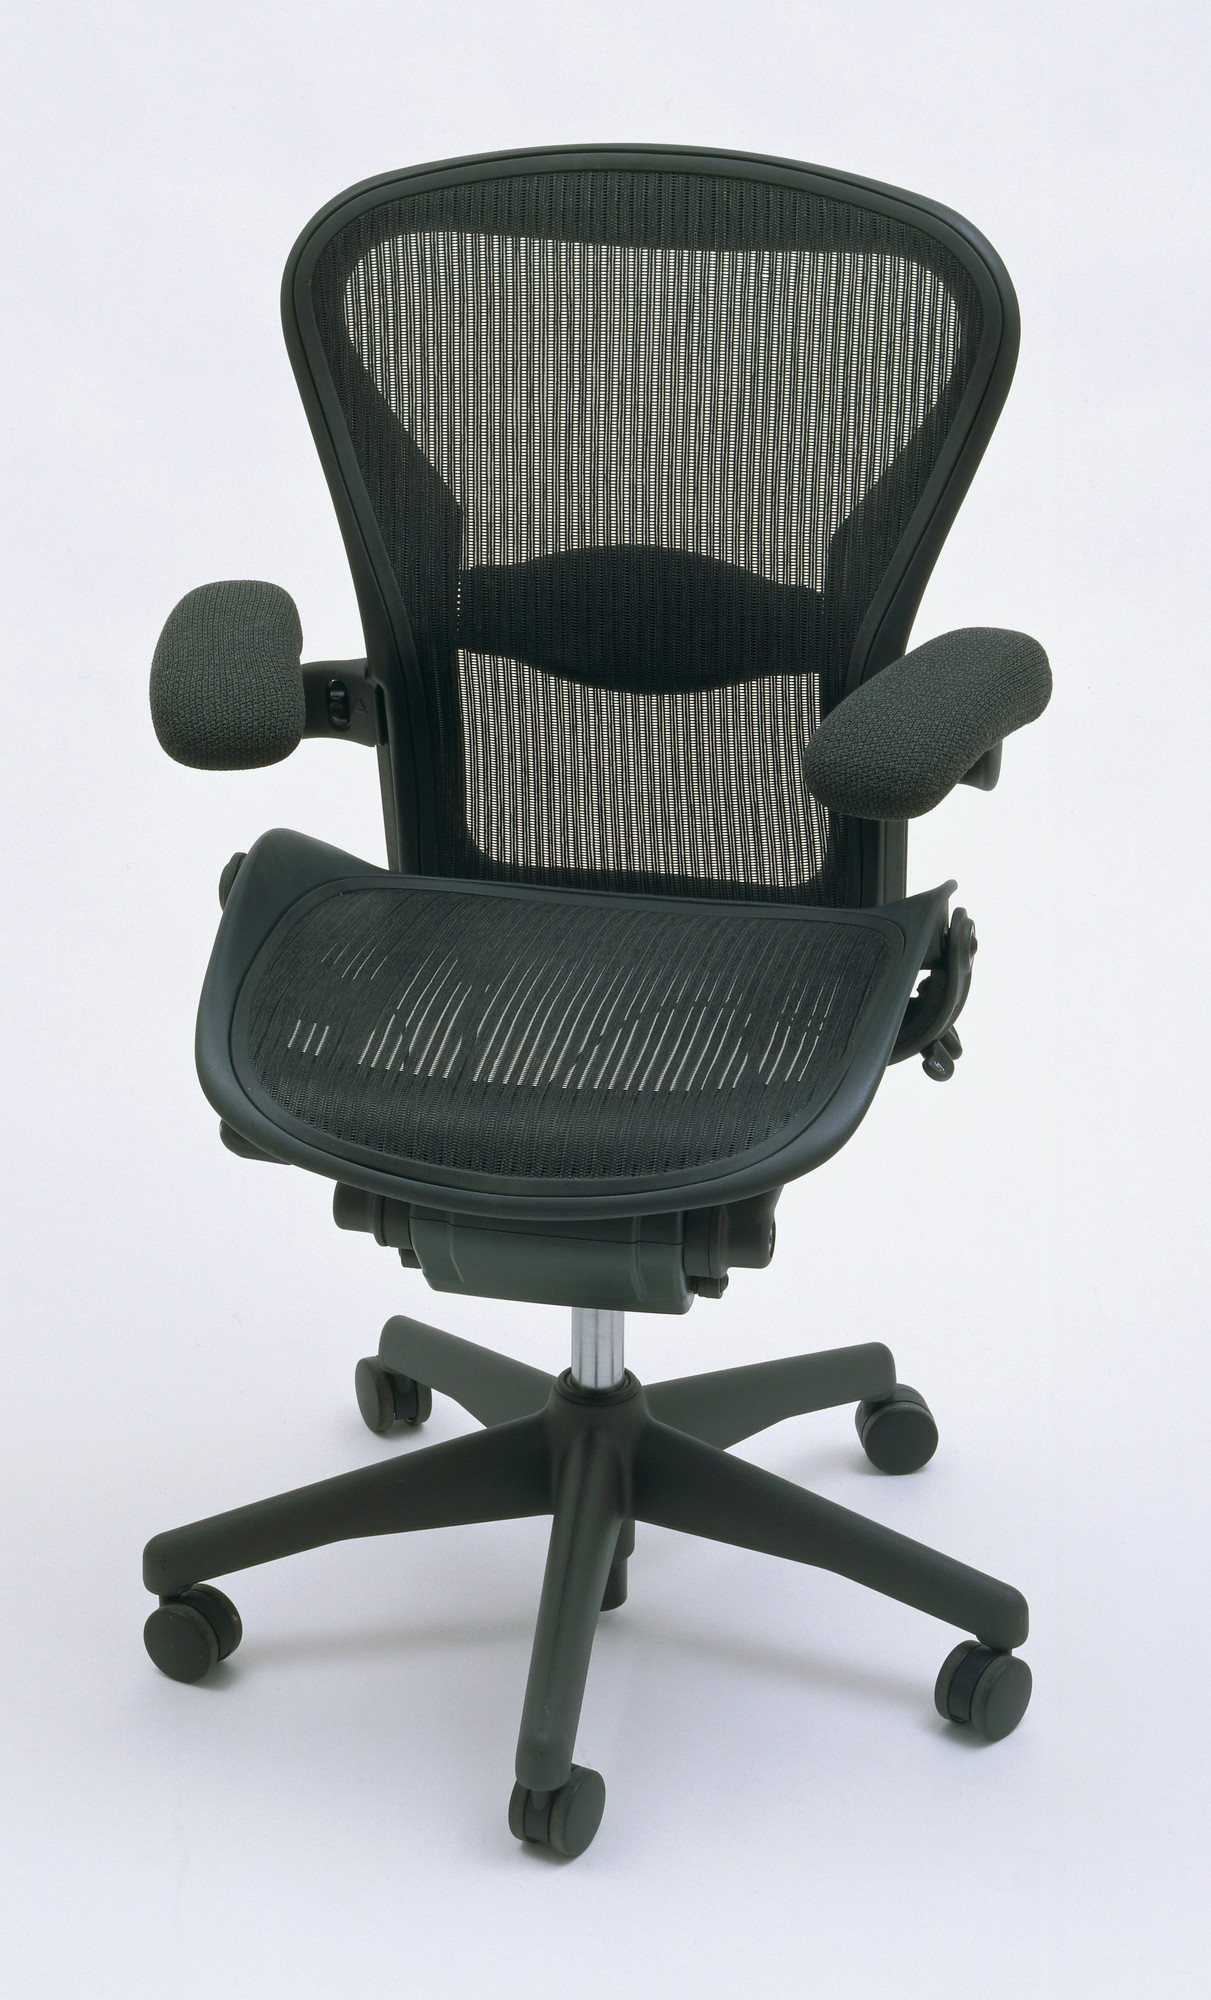 donald t chadwick william stumpf aeron office chair 1992 moma